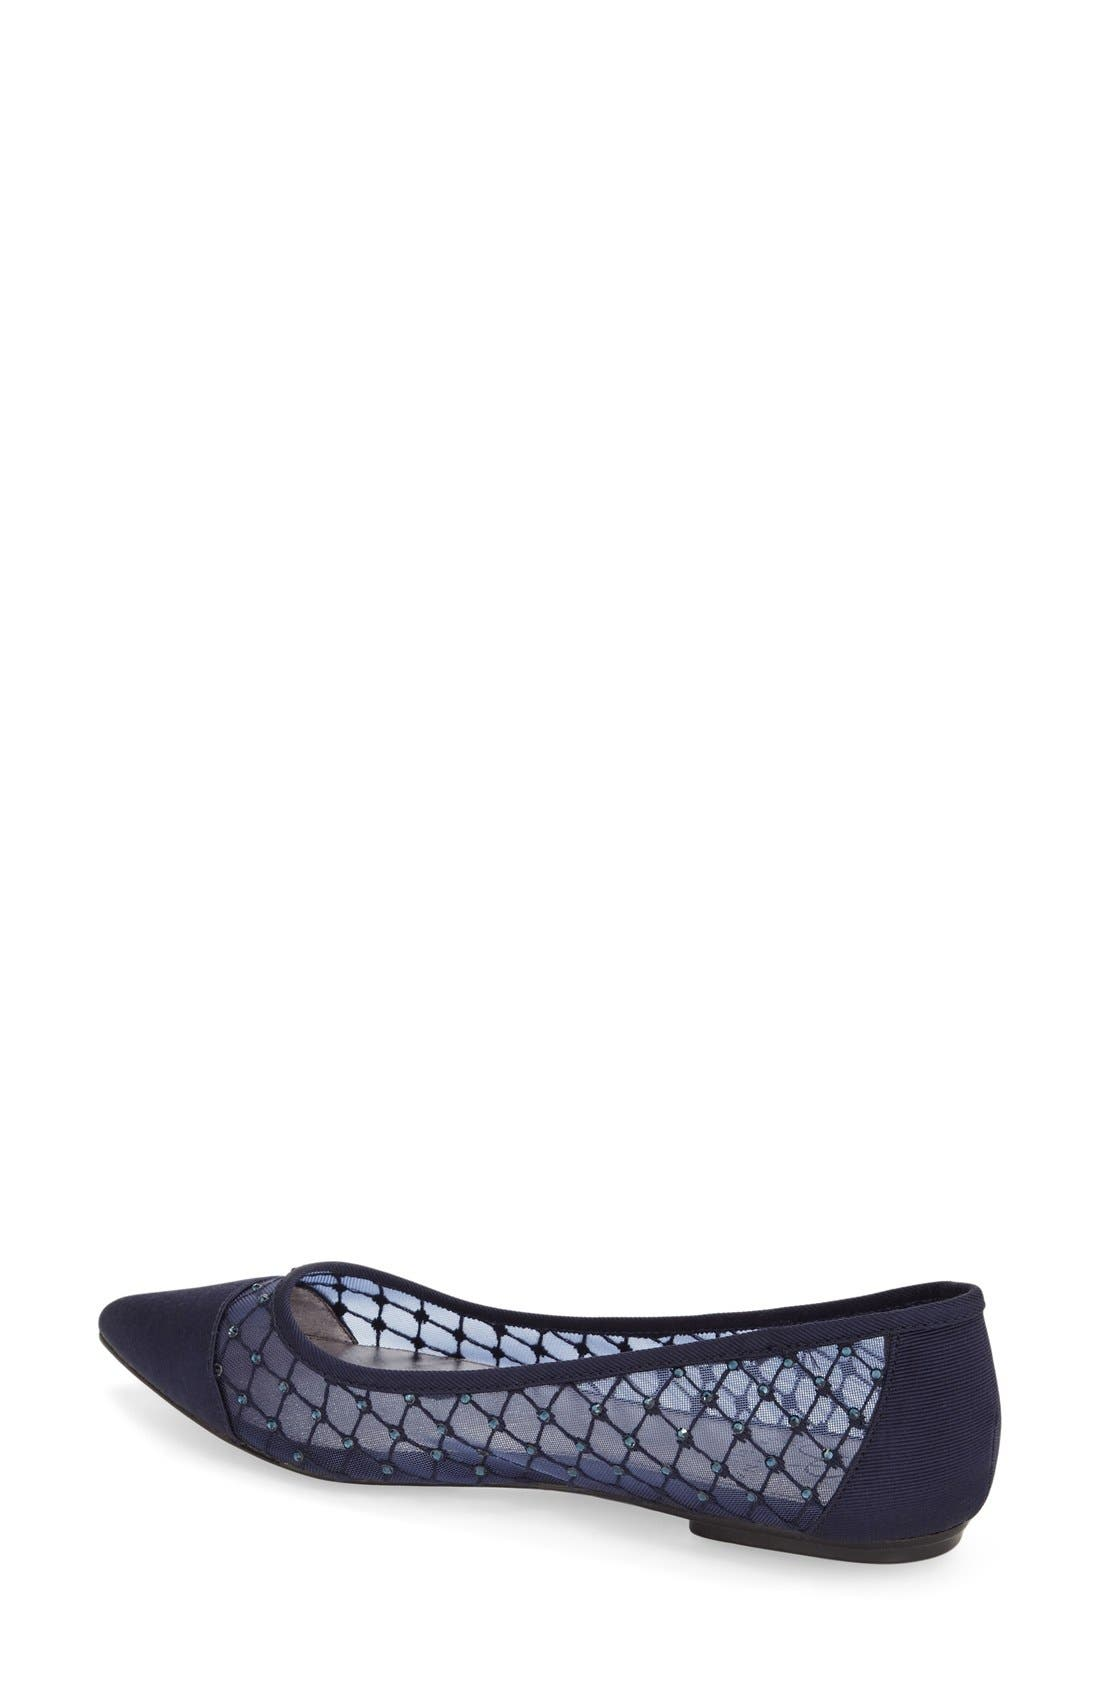 Alternate Image 2  - Adrianna Papell Jeweled Mesh Ballet Flat (Women)